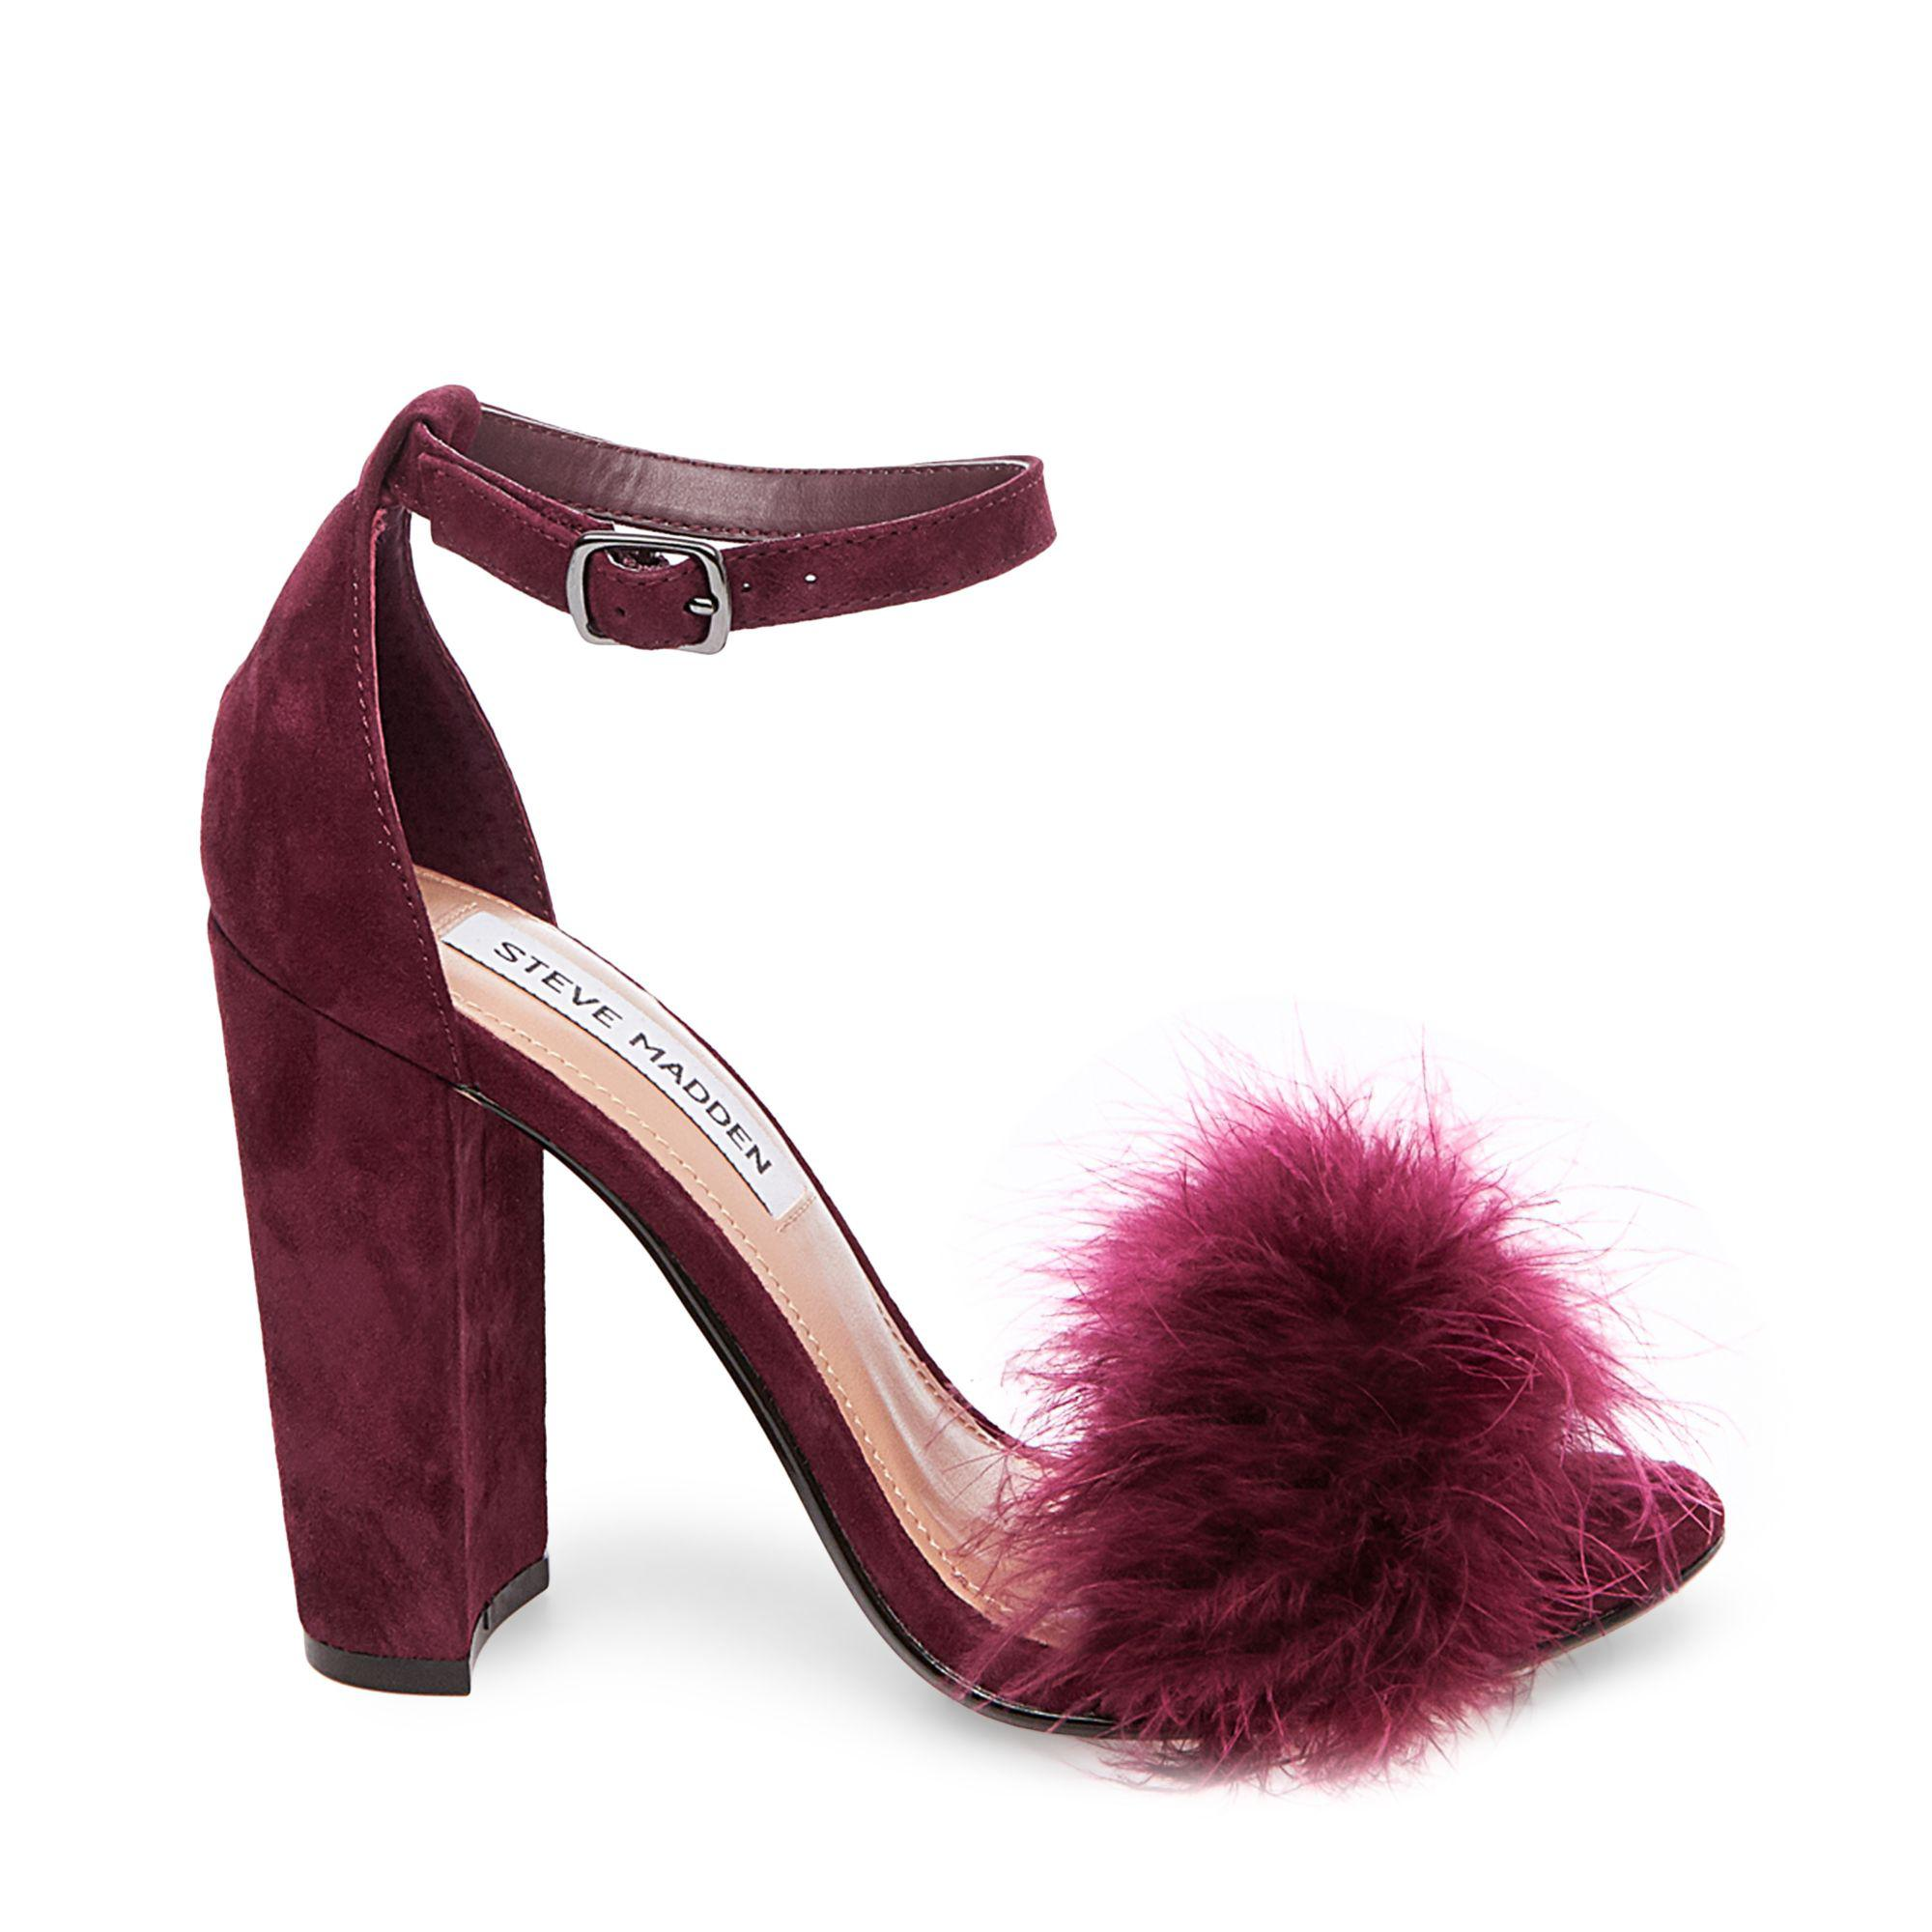 2b1b5004ccd Lyst - Steve Madden Carabu Feather Suede Block Heel Dress Sandals in ...